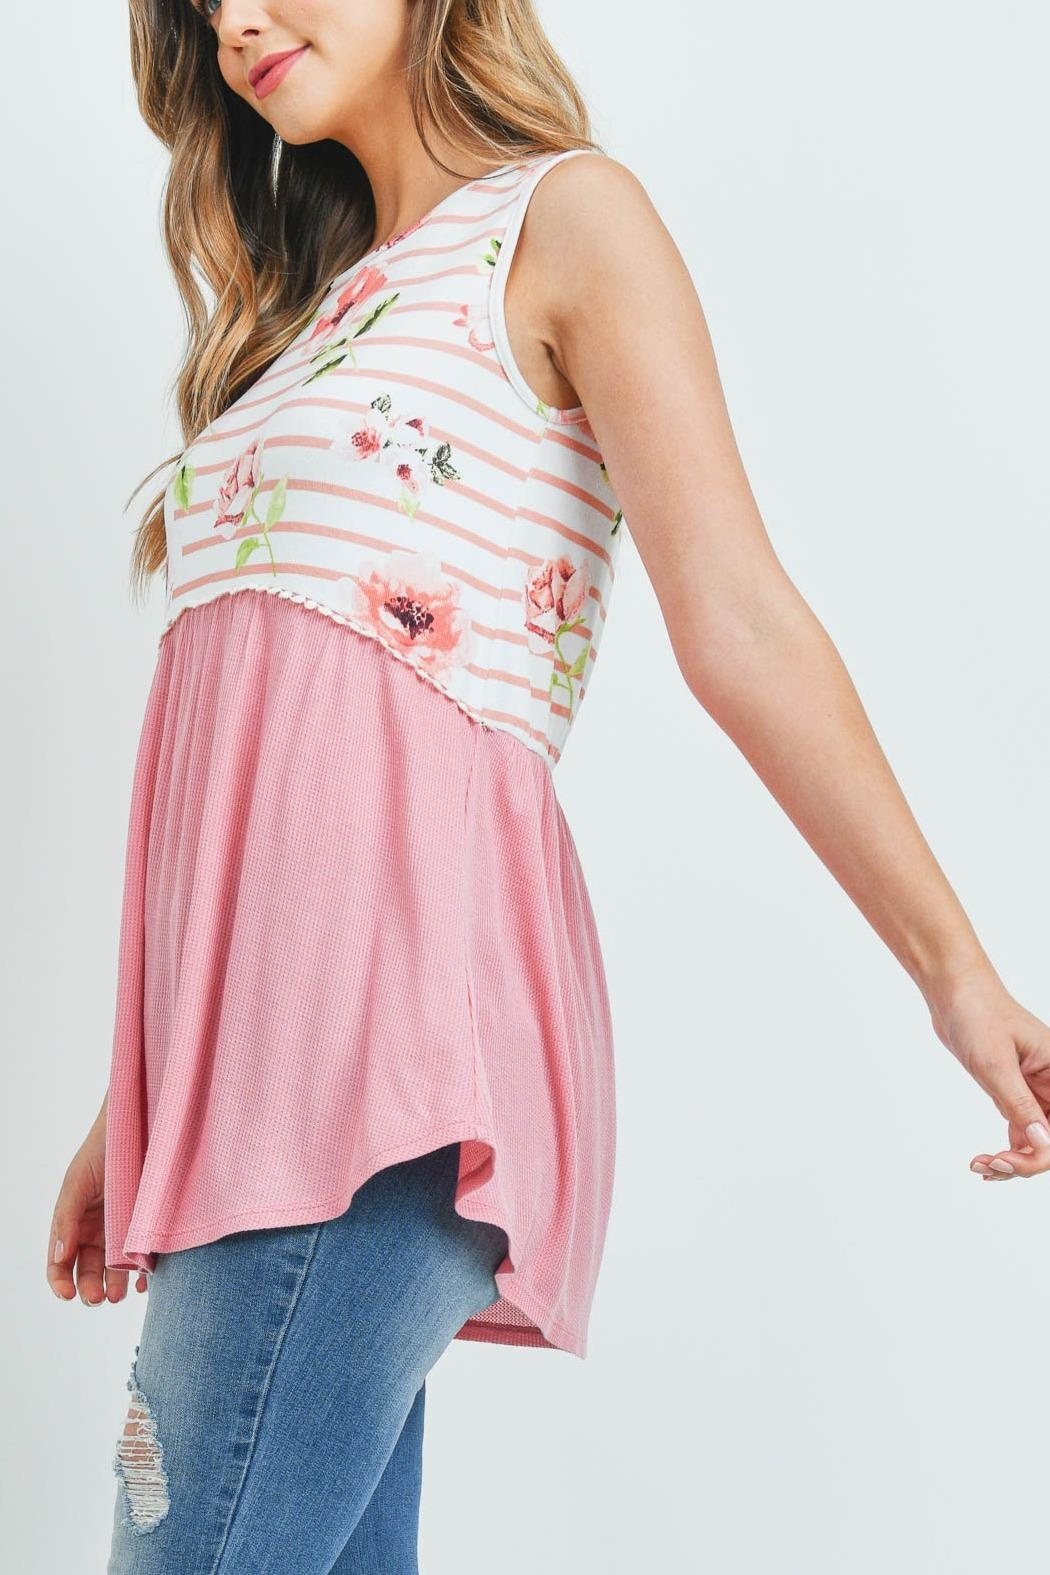 Riah Fashion Floral-Stripes-Contrast-Pompom-Detail-Top - Side Cropped Image